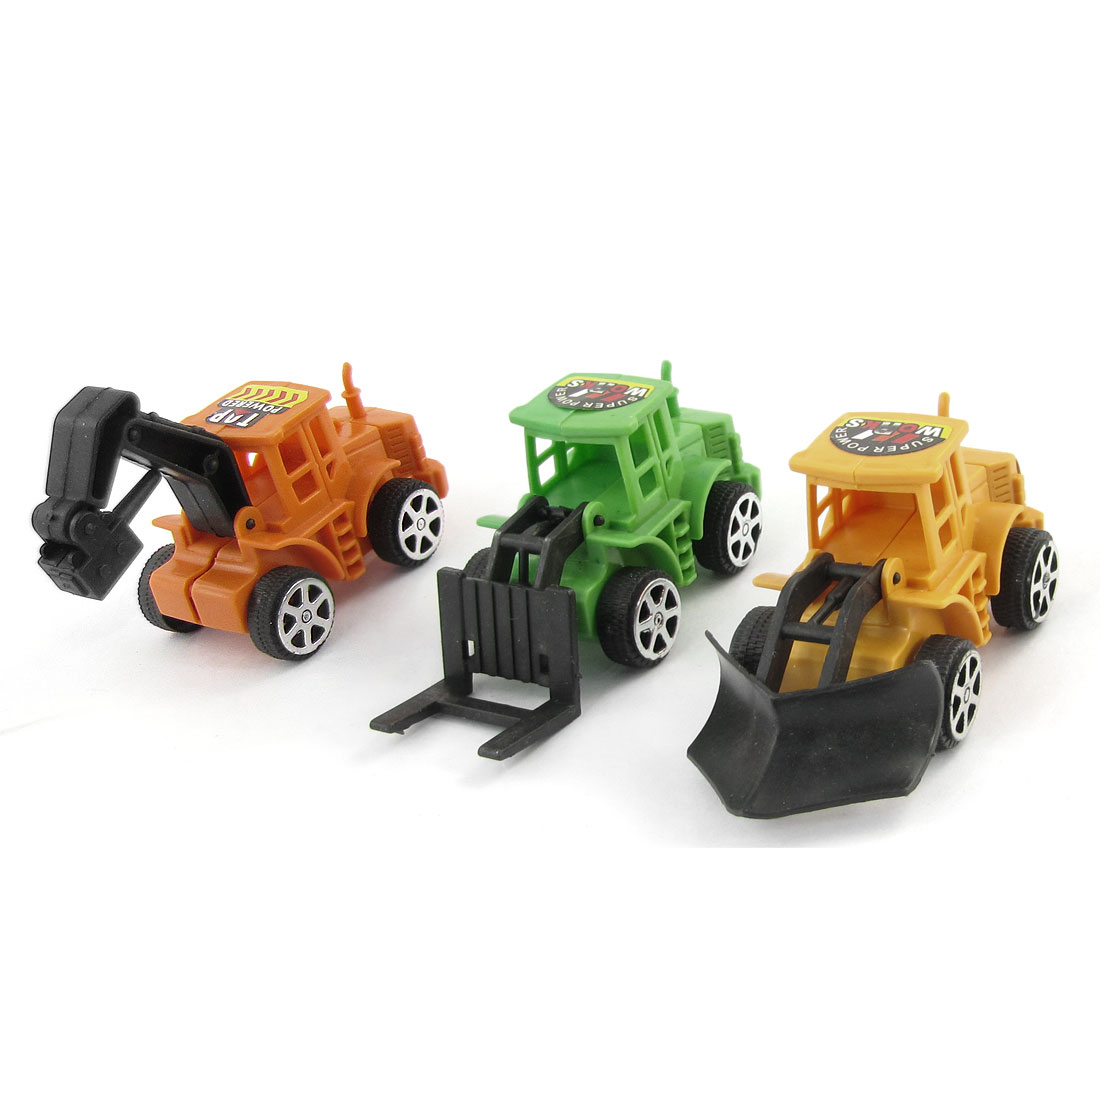 3 in 1 Set Cars Toy Black Wheels Assorted Color Body Earthworks Plastic Truck